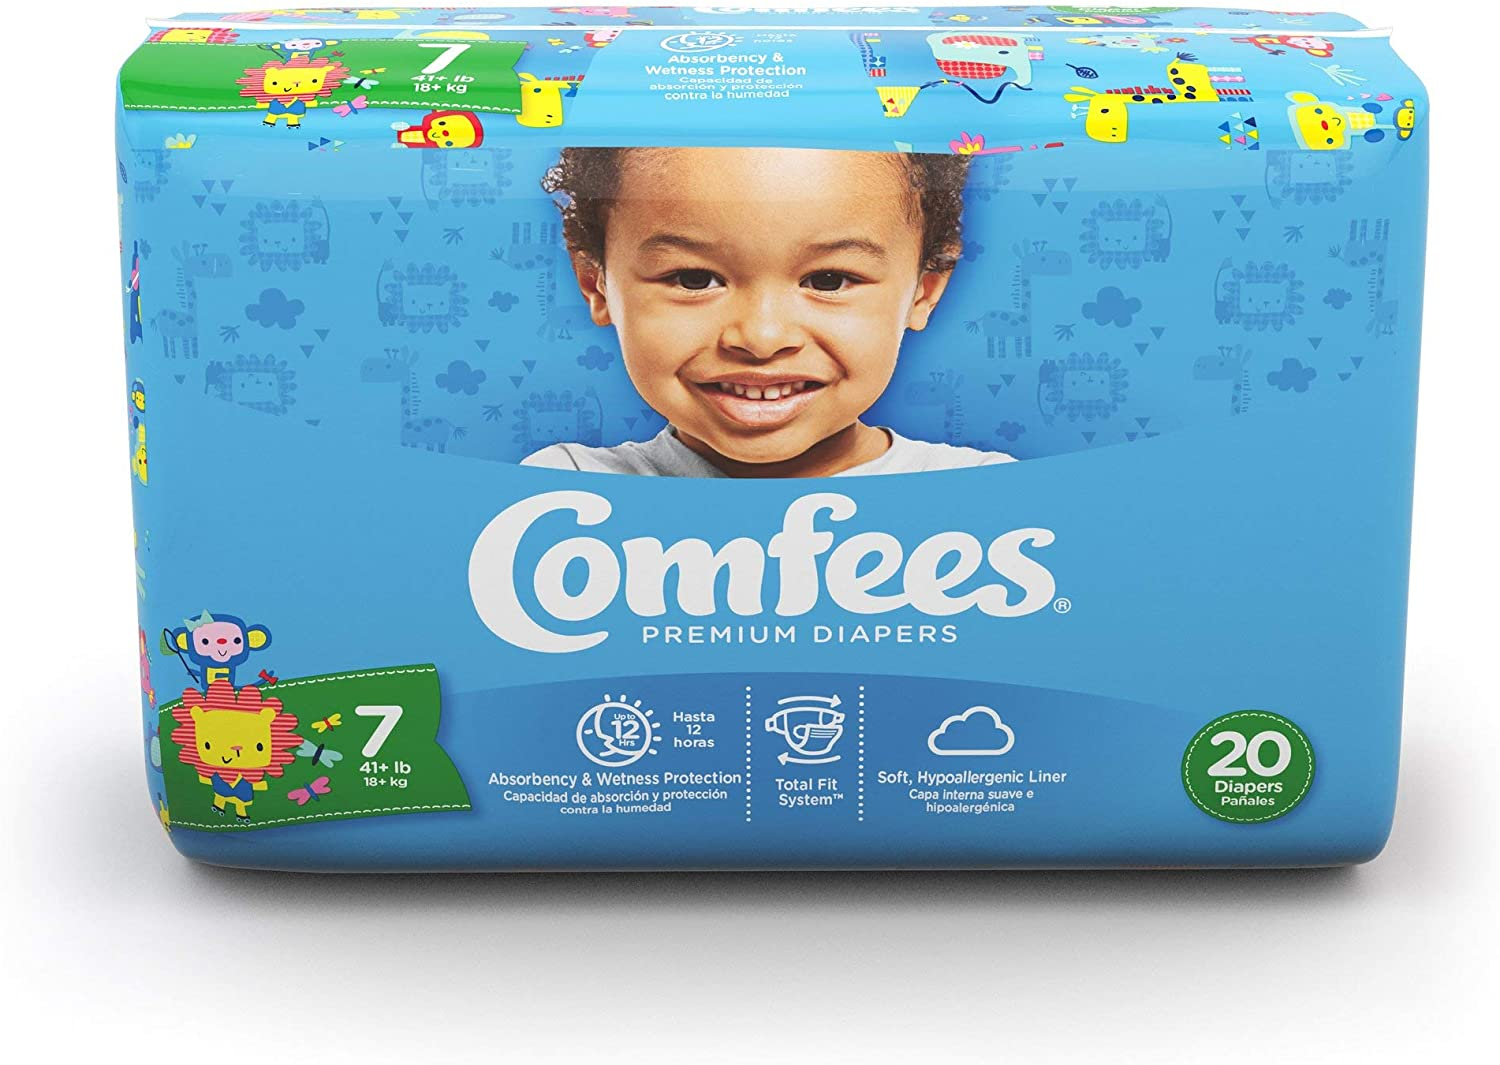 COMFEES Diapers Size 7, Disposable Baby Diapers, 20 Count, Economy Pack Plus